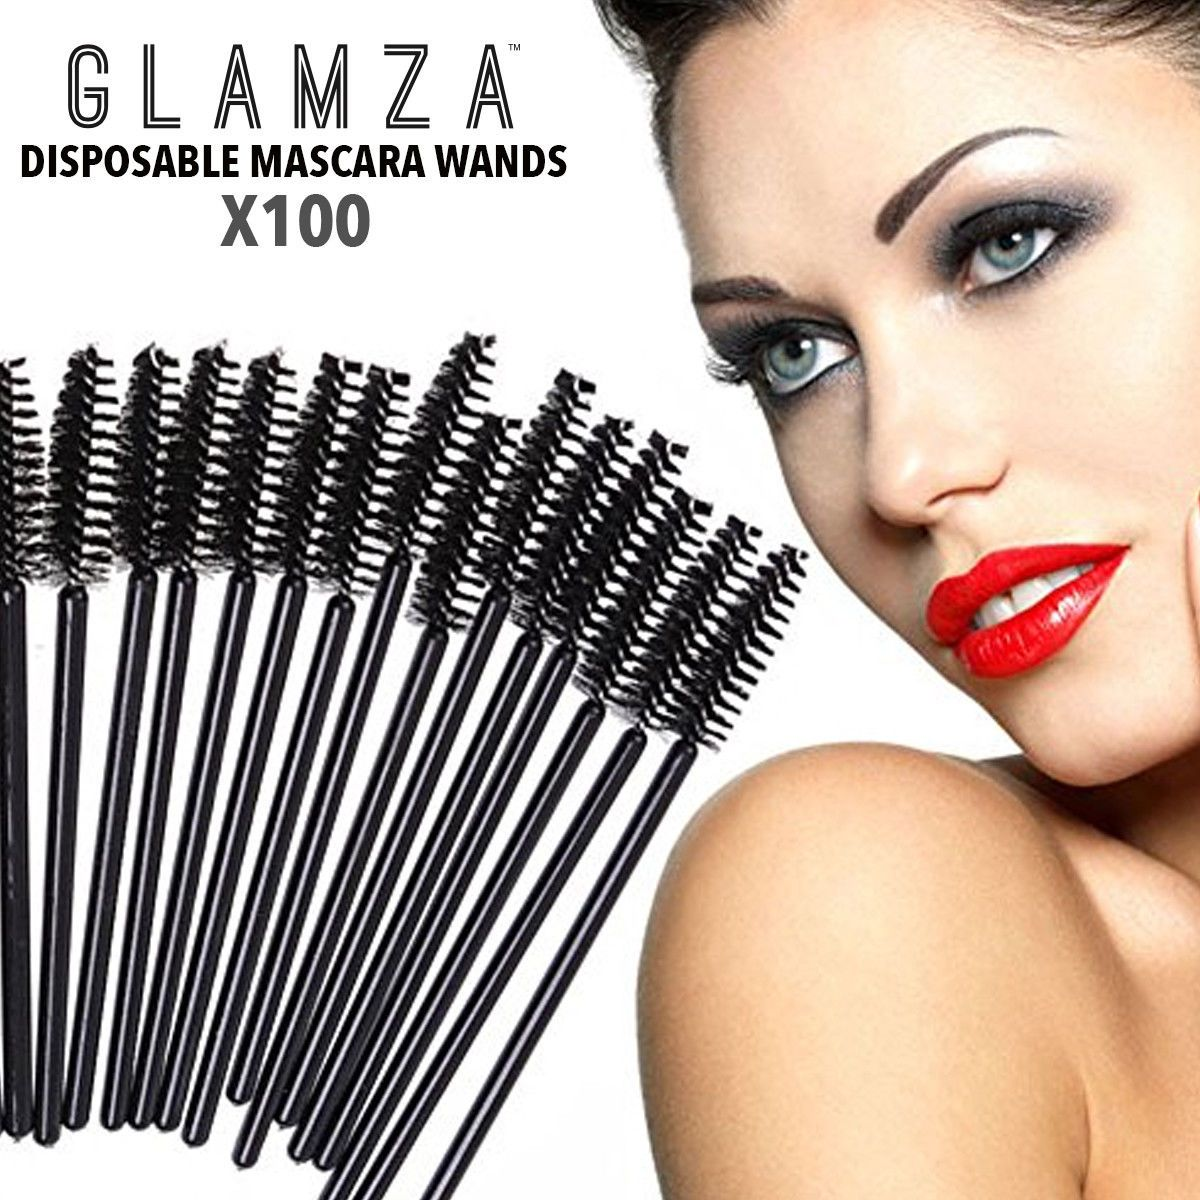 Glamza Mascara Wands x100, Makeup Brushes by Forever Cosmetics